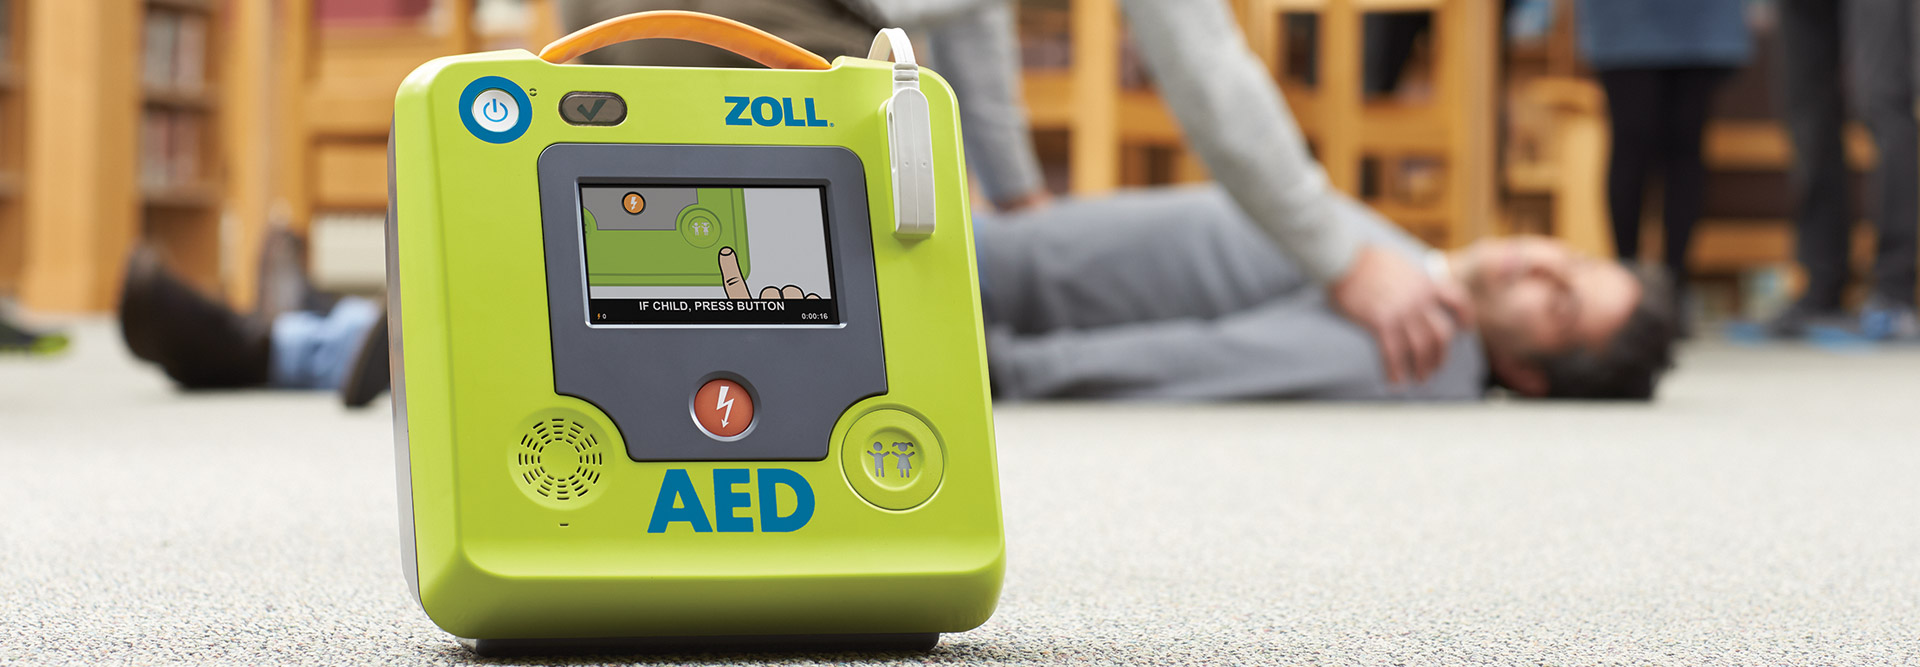 zoll medical aed 3